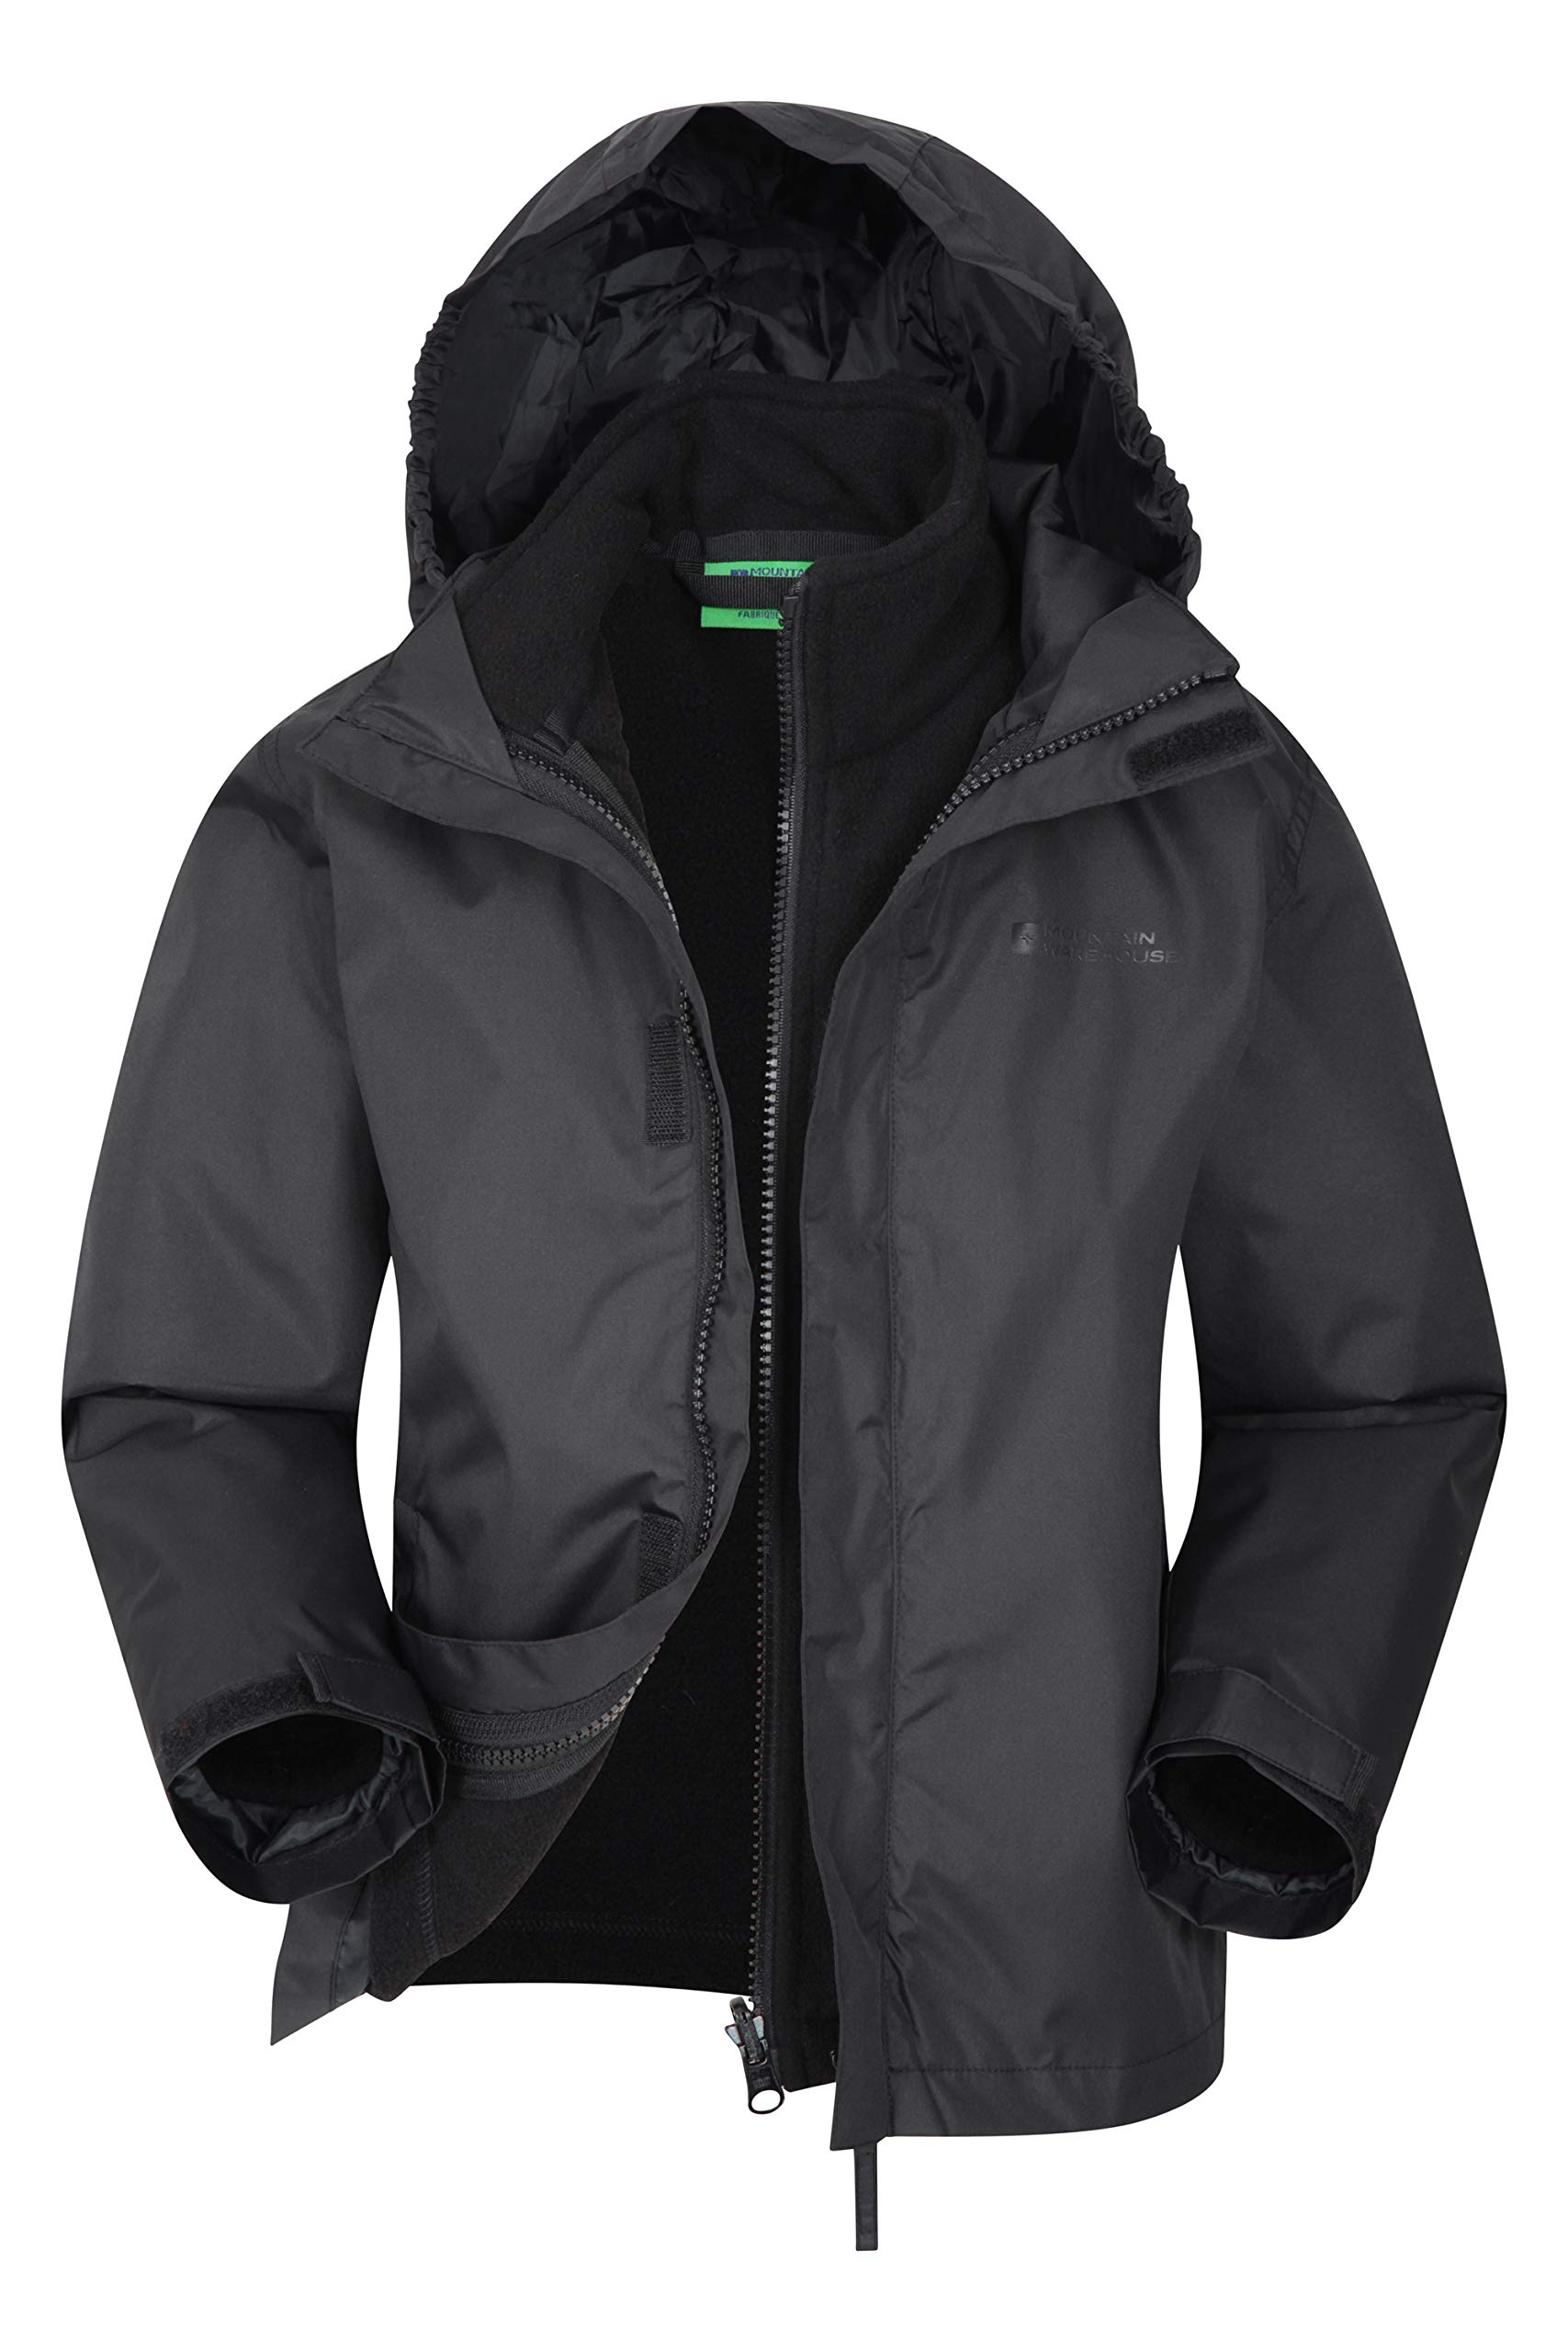 Mountain Warehouse Fell Kids 3 in 1 Jacket - Autumn Triclimate Jacket Black 11-12 Years by Mountain Warehouse